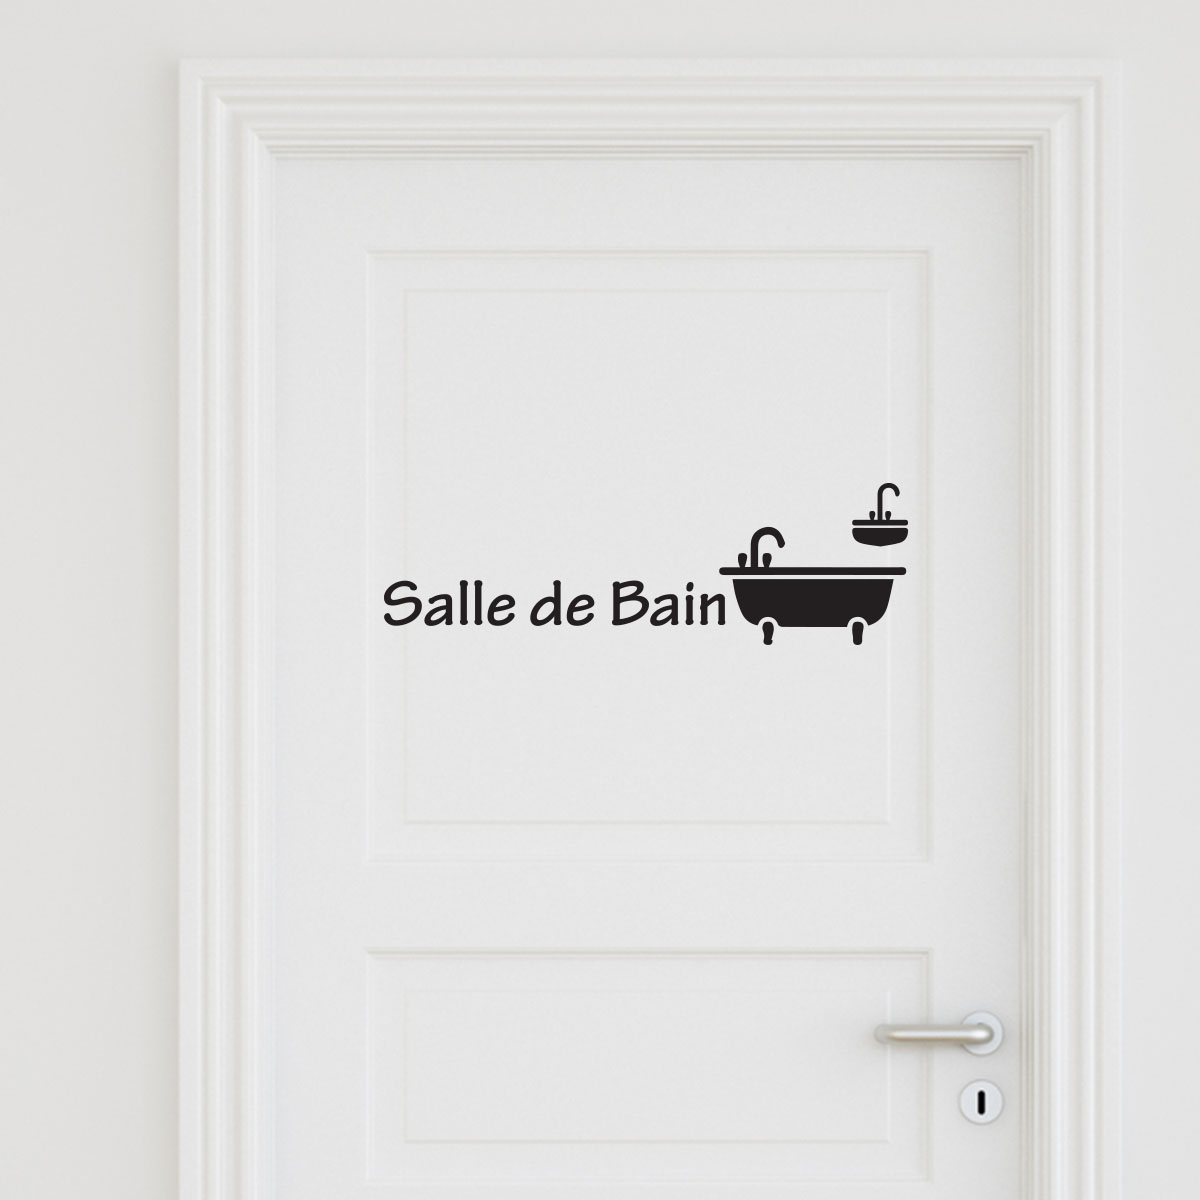 sticker porte salle de bain 3 stickers portes salle de bain ambiance sticker. Black Bedroom Furniture Sets. Home Design Ideas